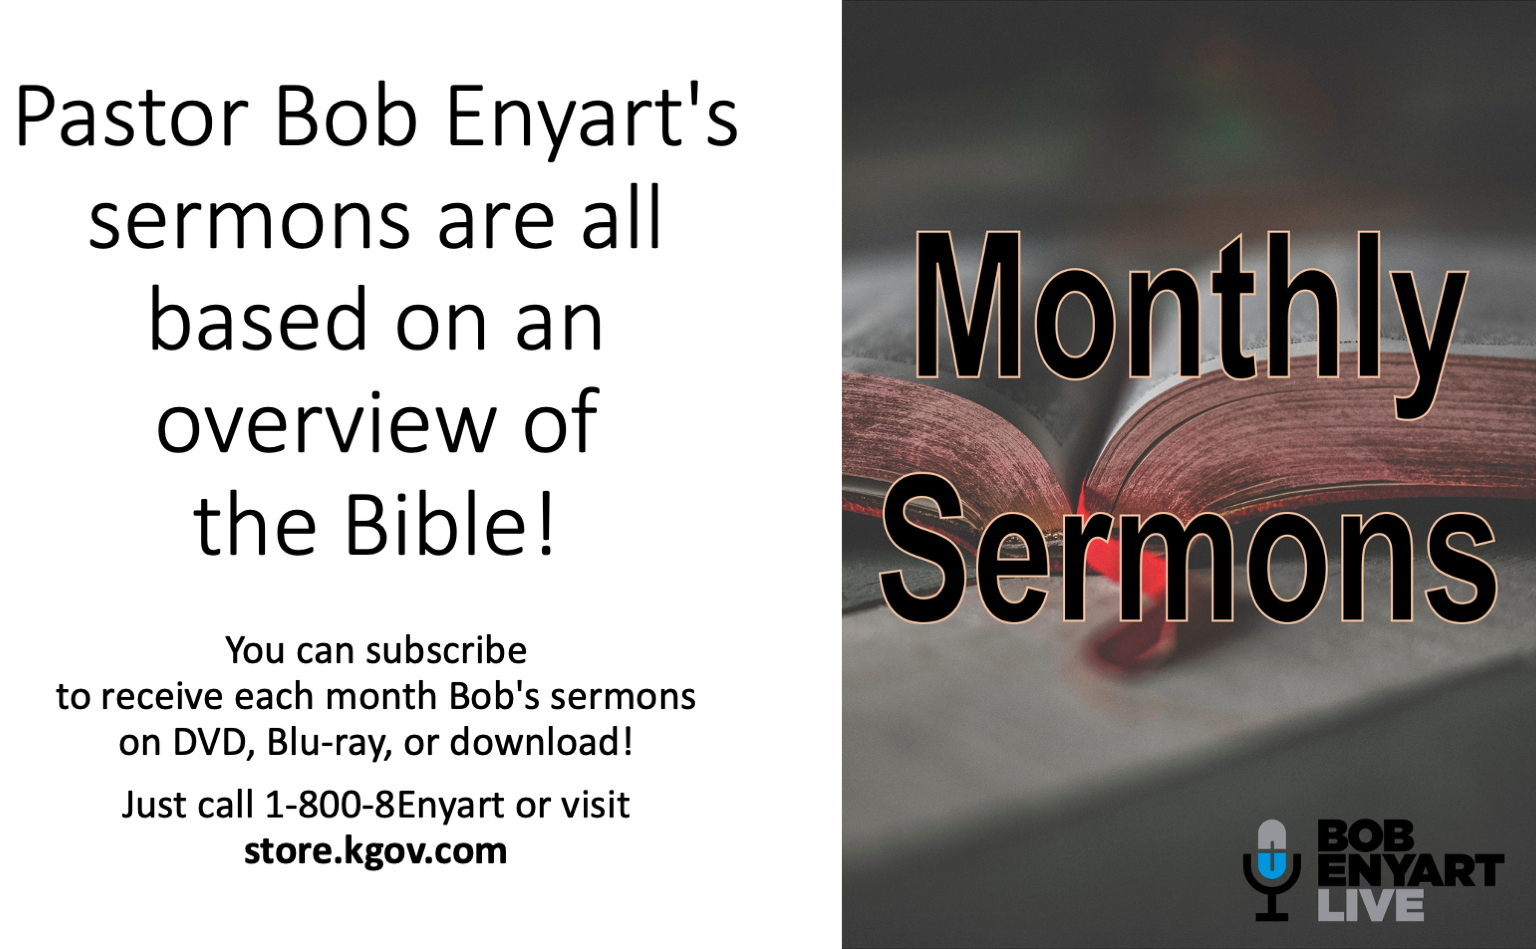 All Bob Enyart's sermons are based on an overview of the Bible! Subscribe by calling 1-800-836-9278. Sight impaired? Ask for MP3s and a 50% discount!